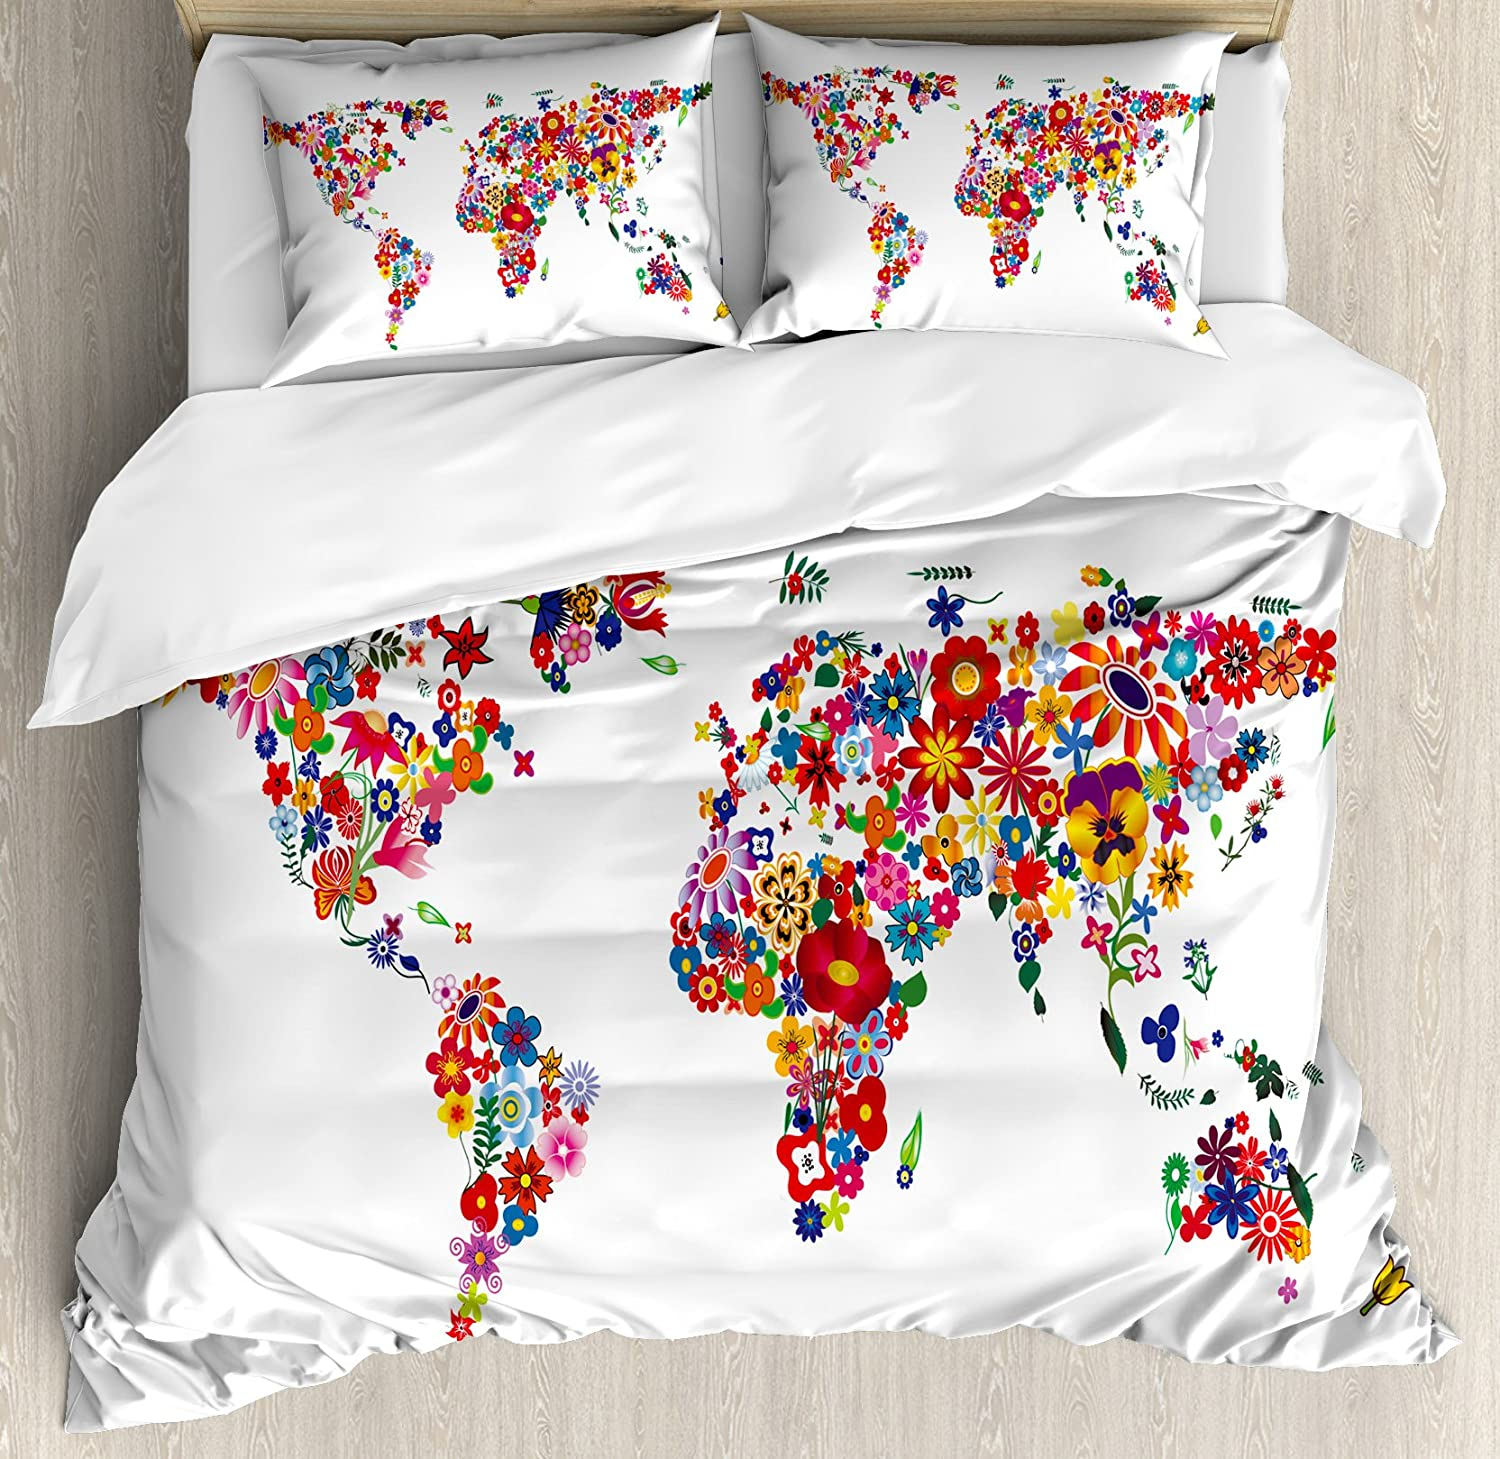 Ambesonne Floral World Map Duvet Cover Set, Bunch of Flower Petals Essence Fragrance Garden Growth Theme Atlas Image, Decorative 3 Piece Bedding Set with 2 Pillow Shams, Queen Size, Red White